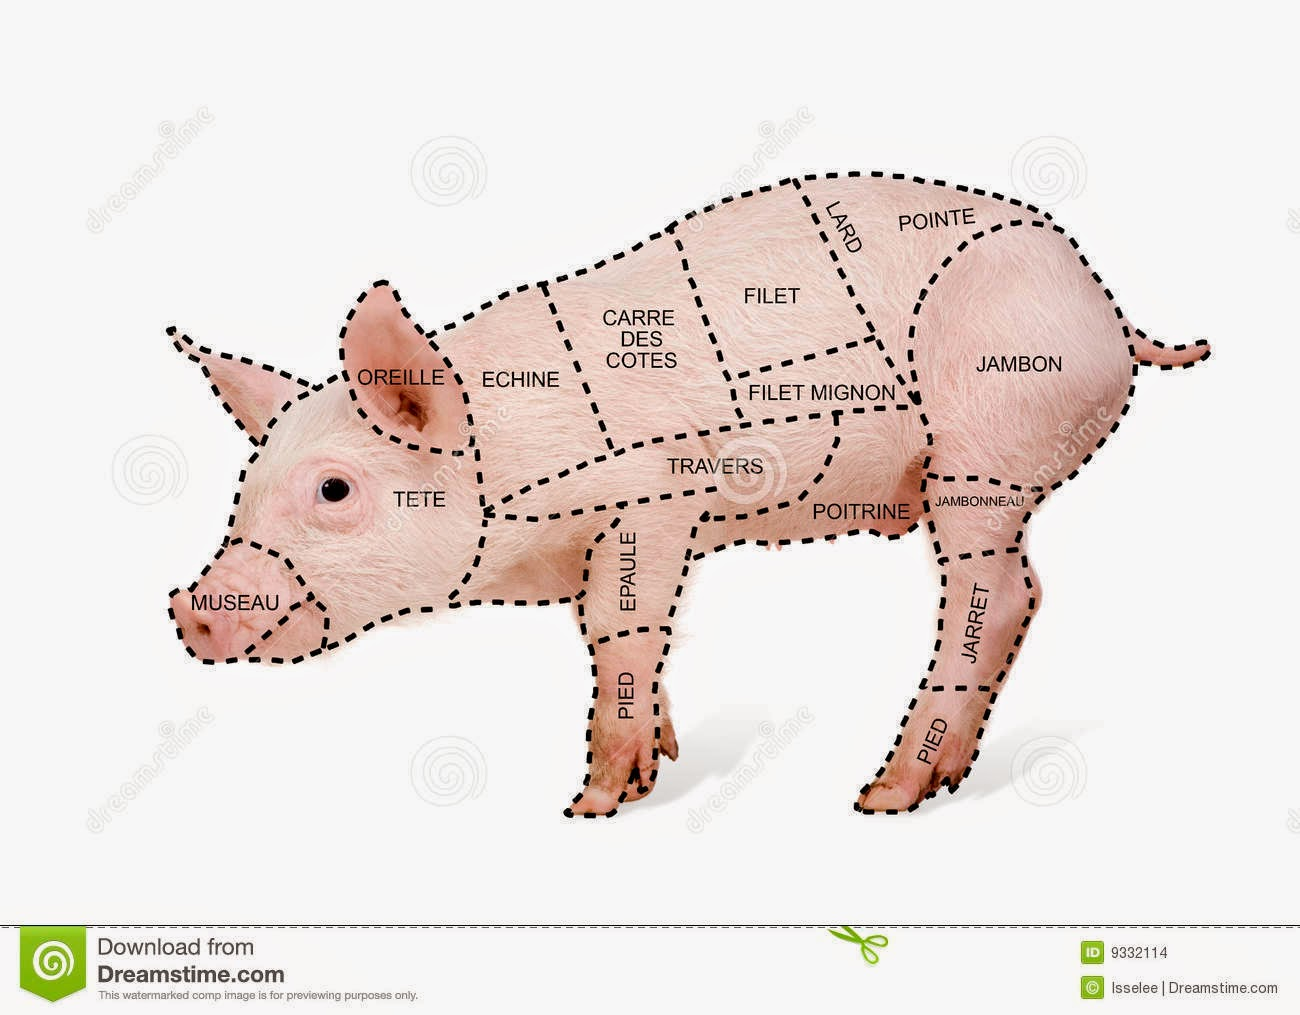 how to cut a pig